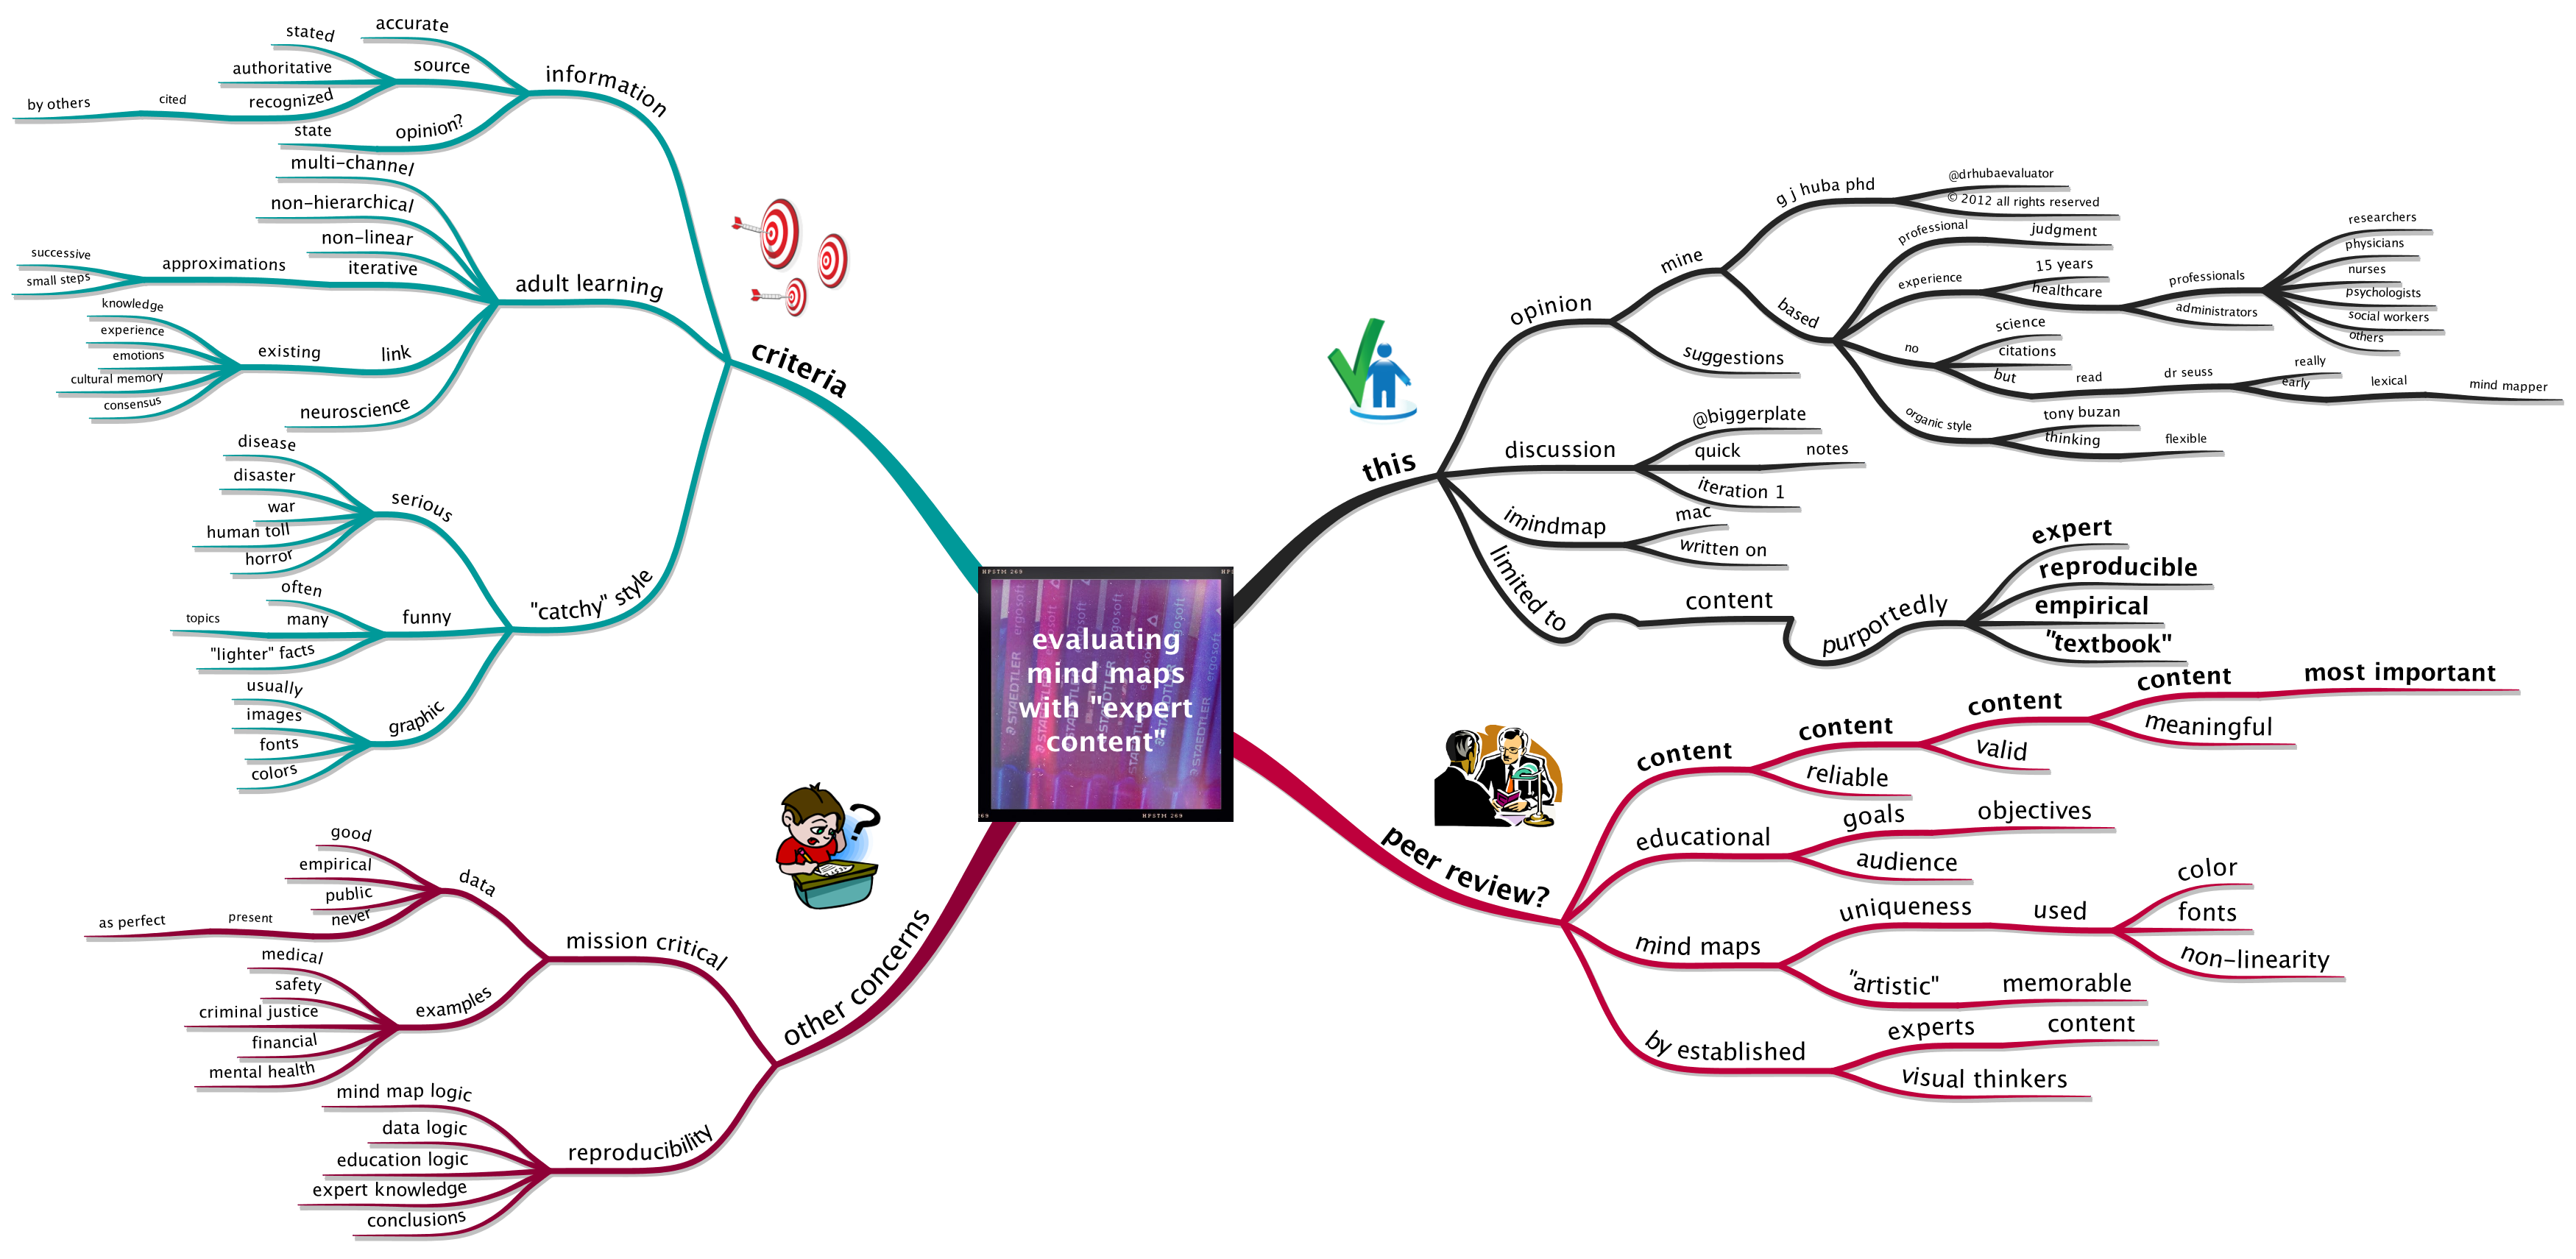 Evaluating Mind Maps with Expert Content